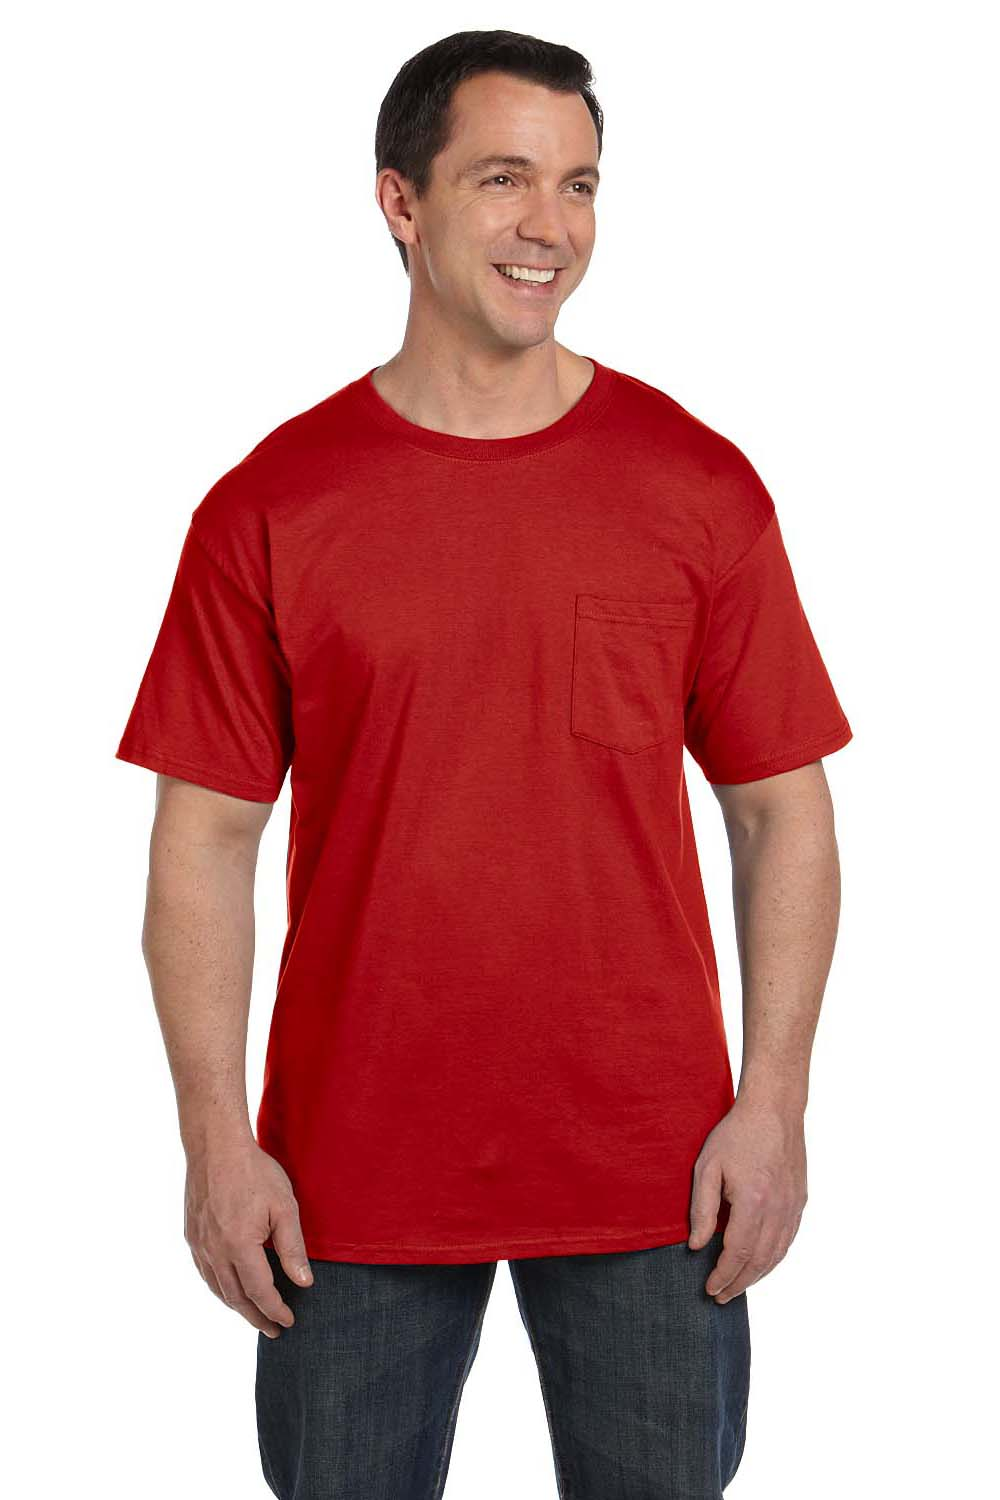 Hanes 5190P Mens Beefy-T Short Sleeve Crewneck T-Shirt w/ Pocket Red Front